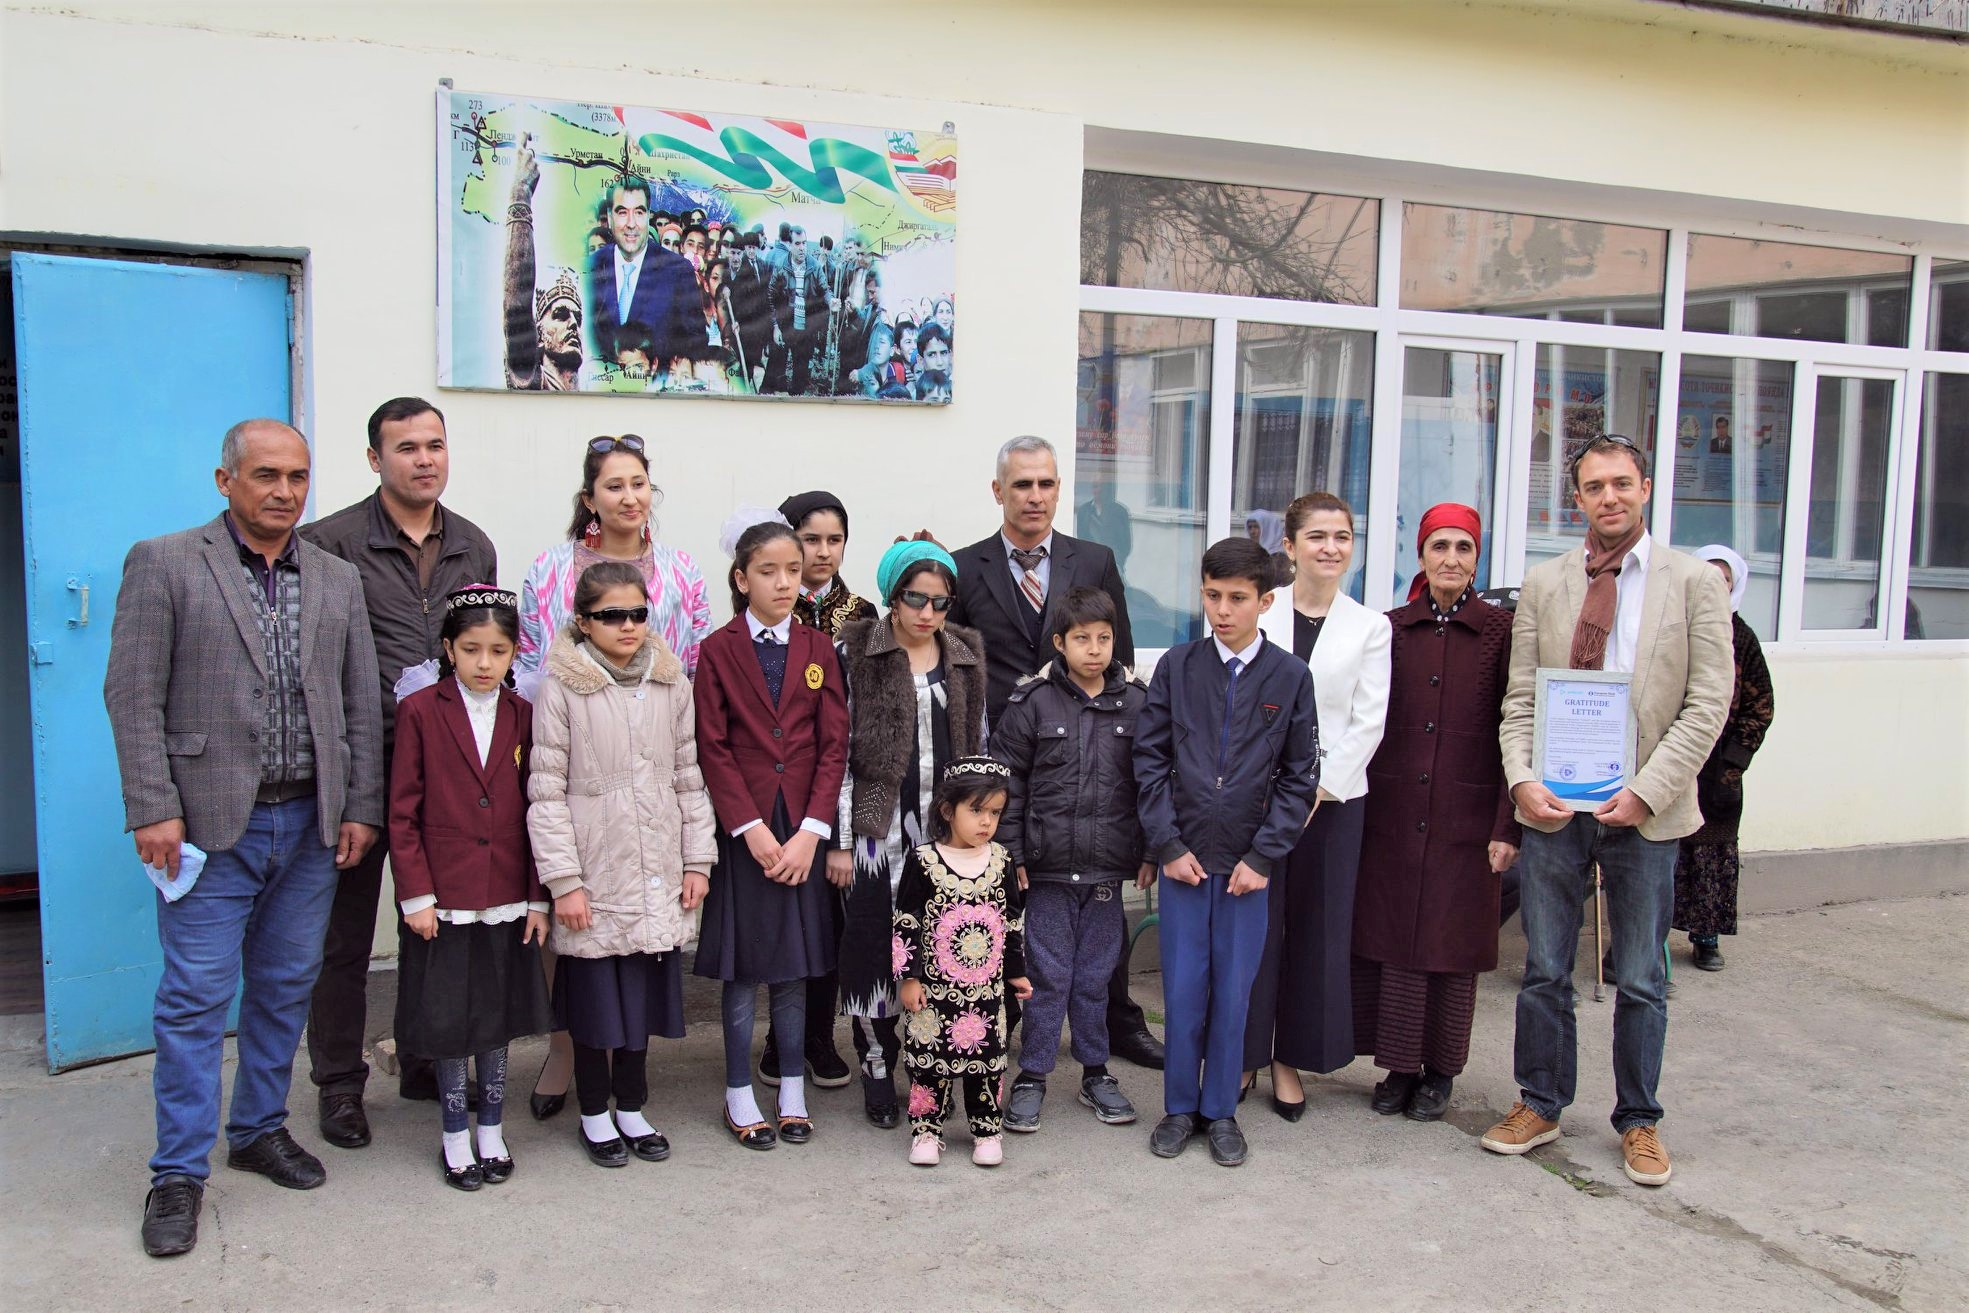 Geres contributes to the thermal renovation of a school for the blind Students in Tajikistan